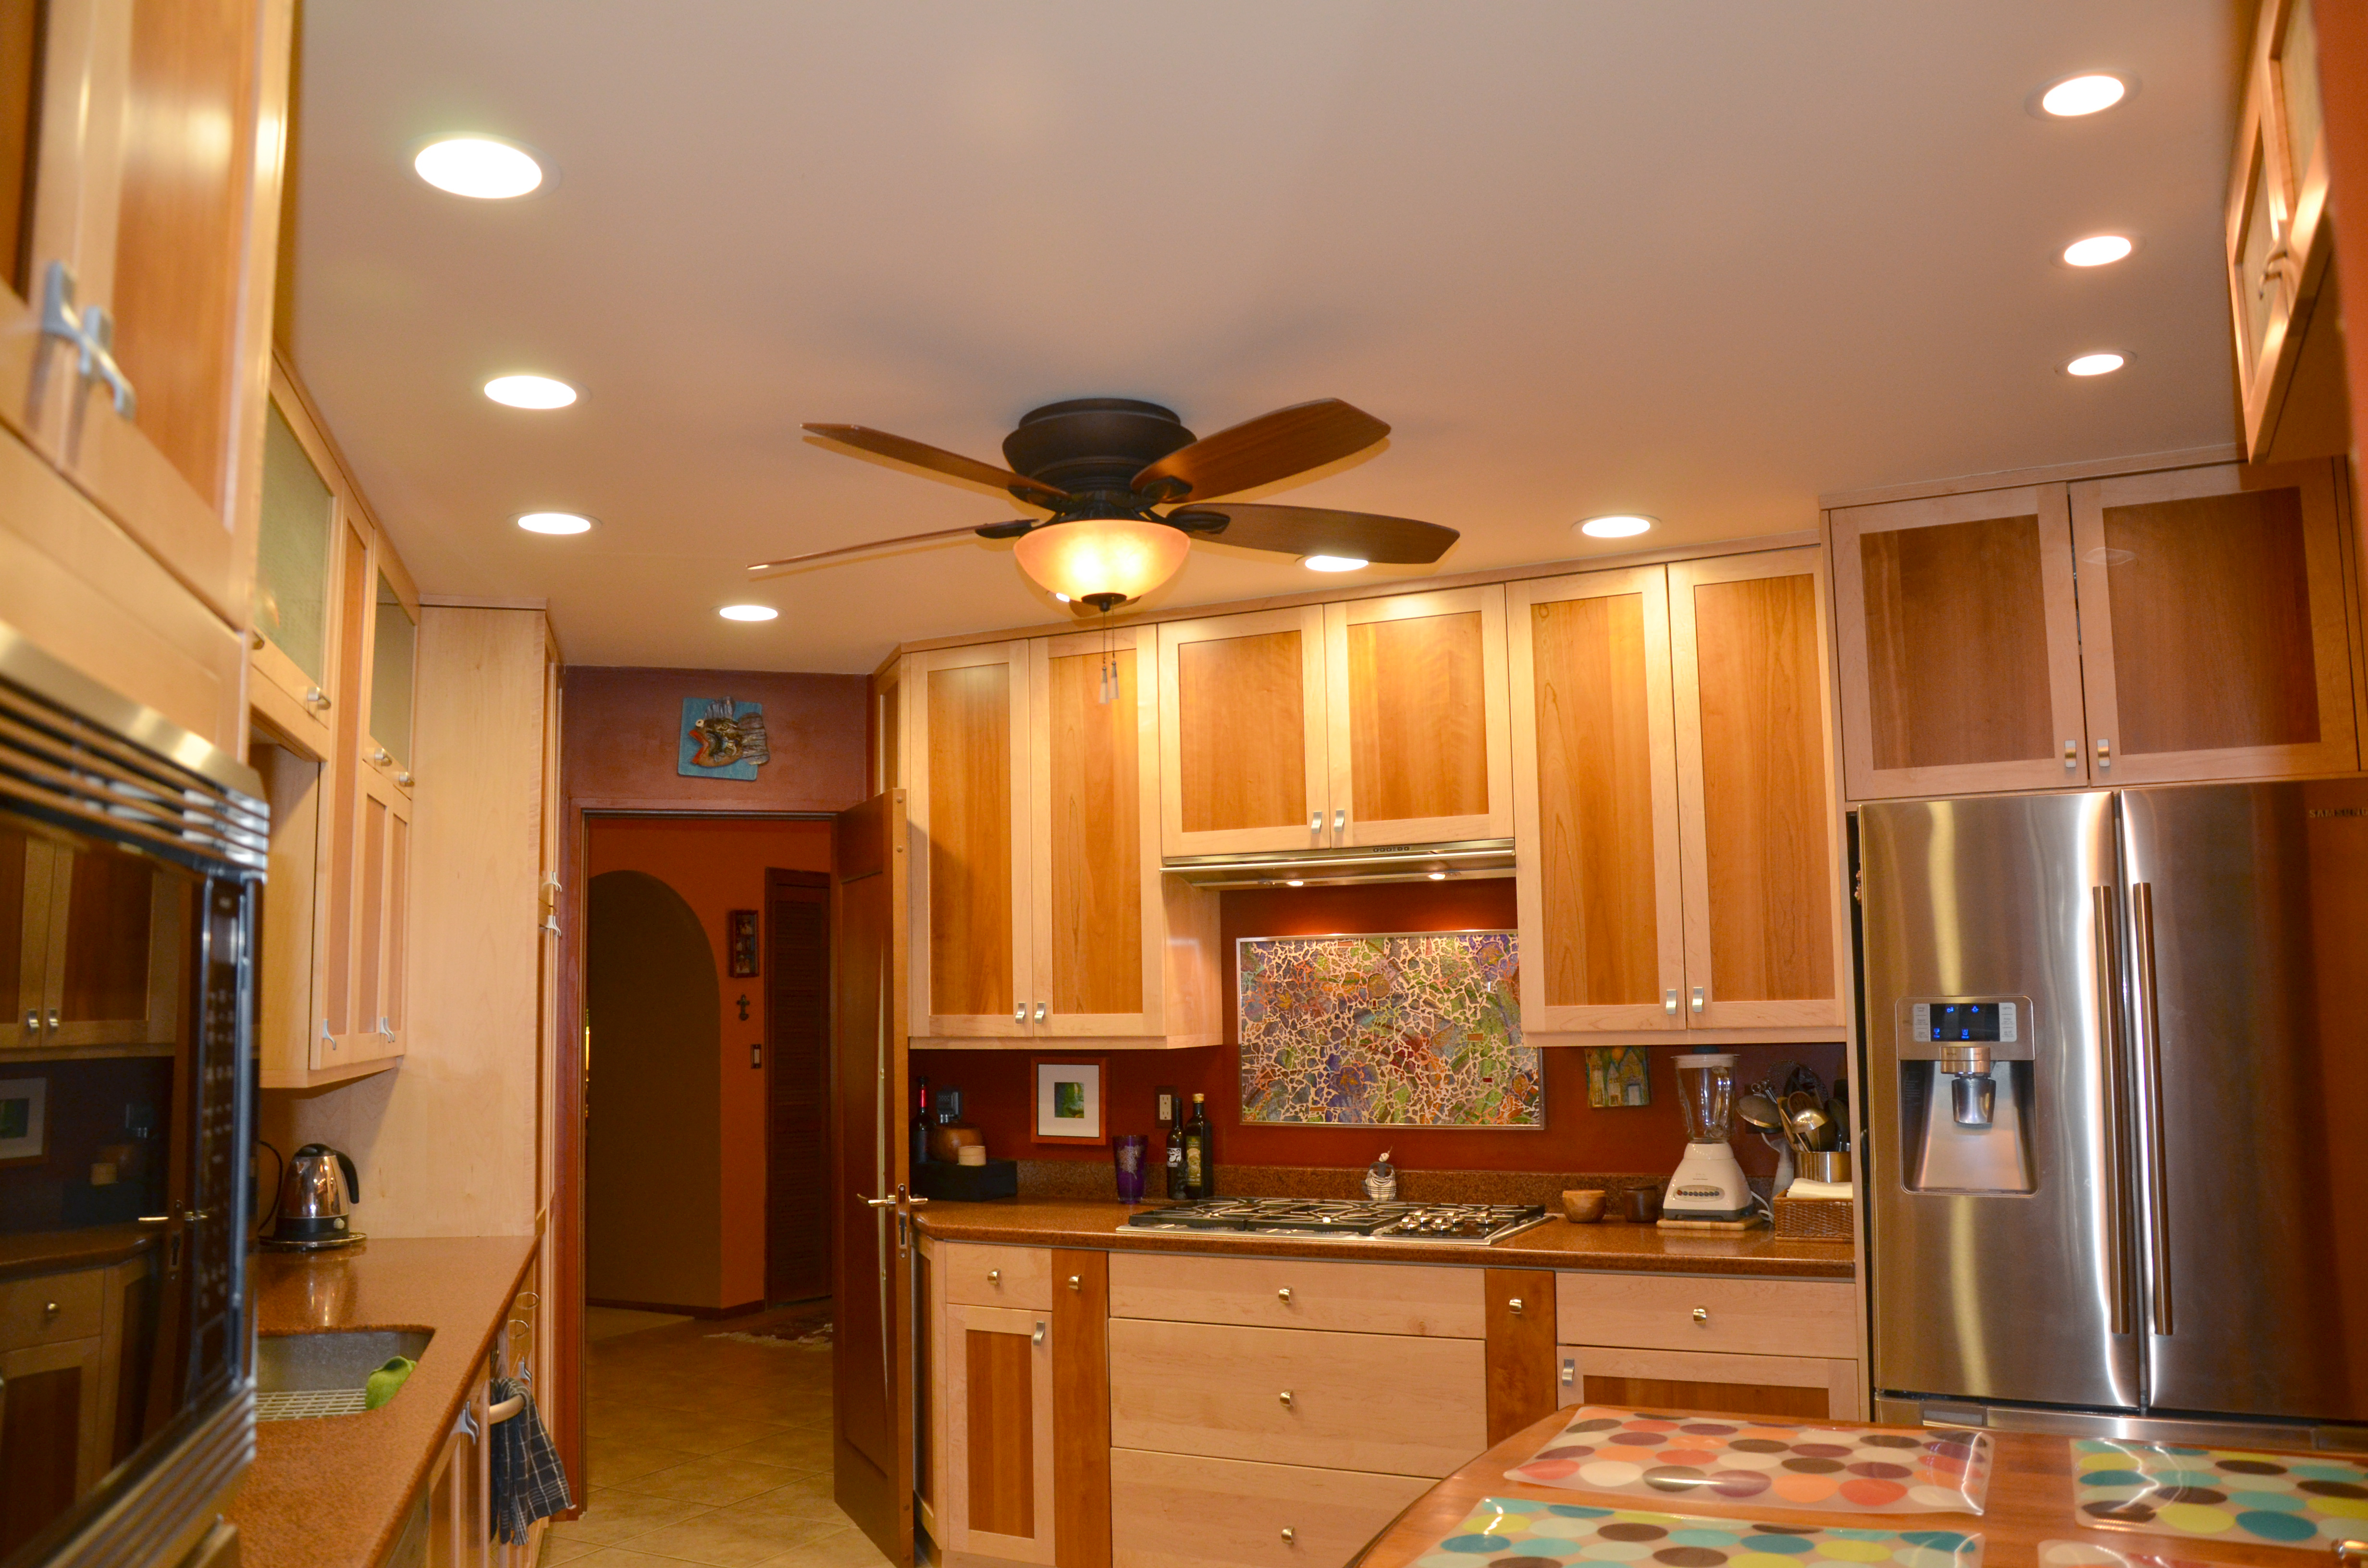 Kitchen Lighting Led Ceiling how to choose the perfect type of led ceiling lights recessed